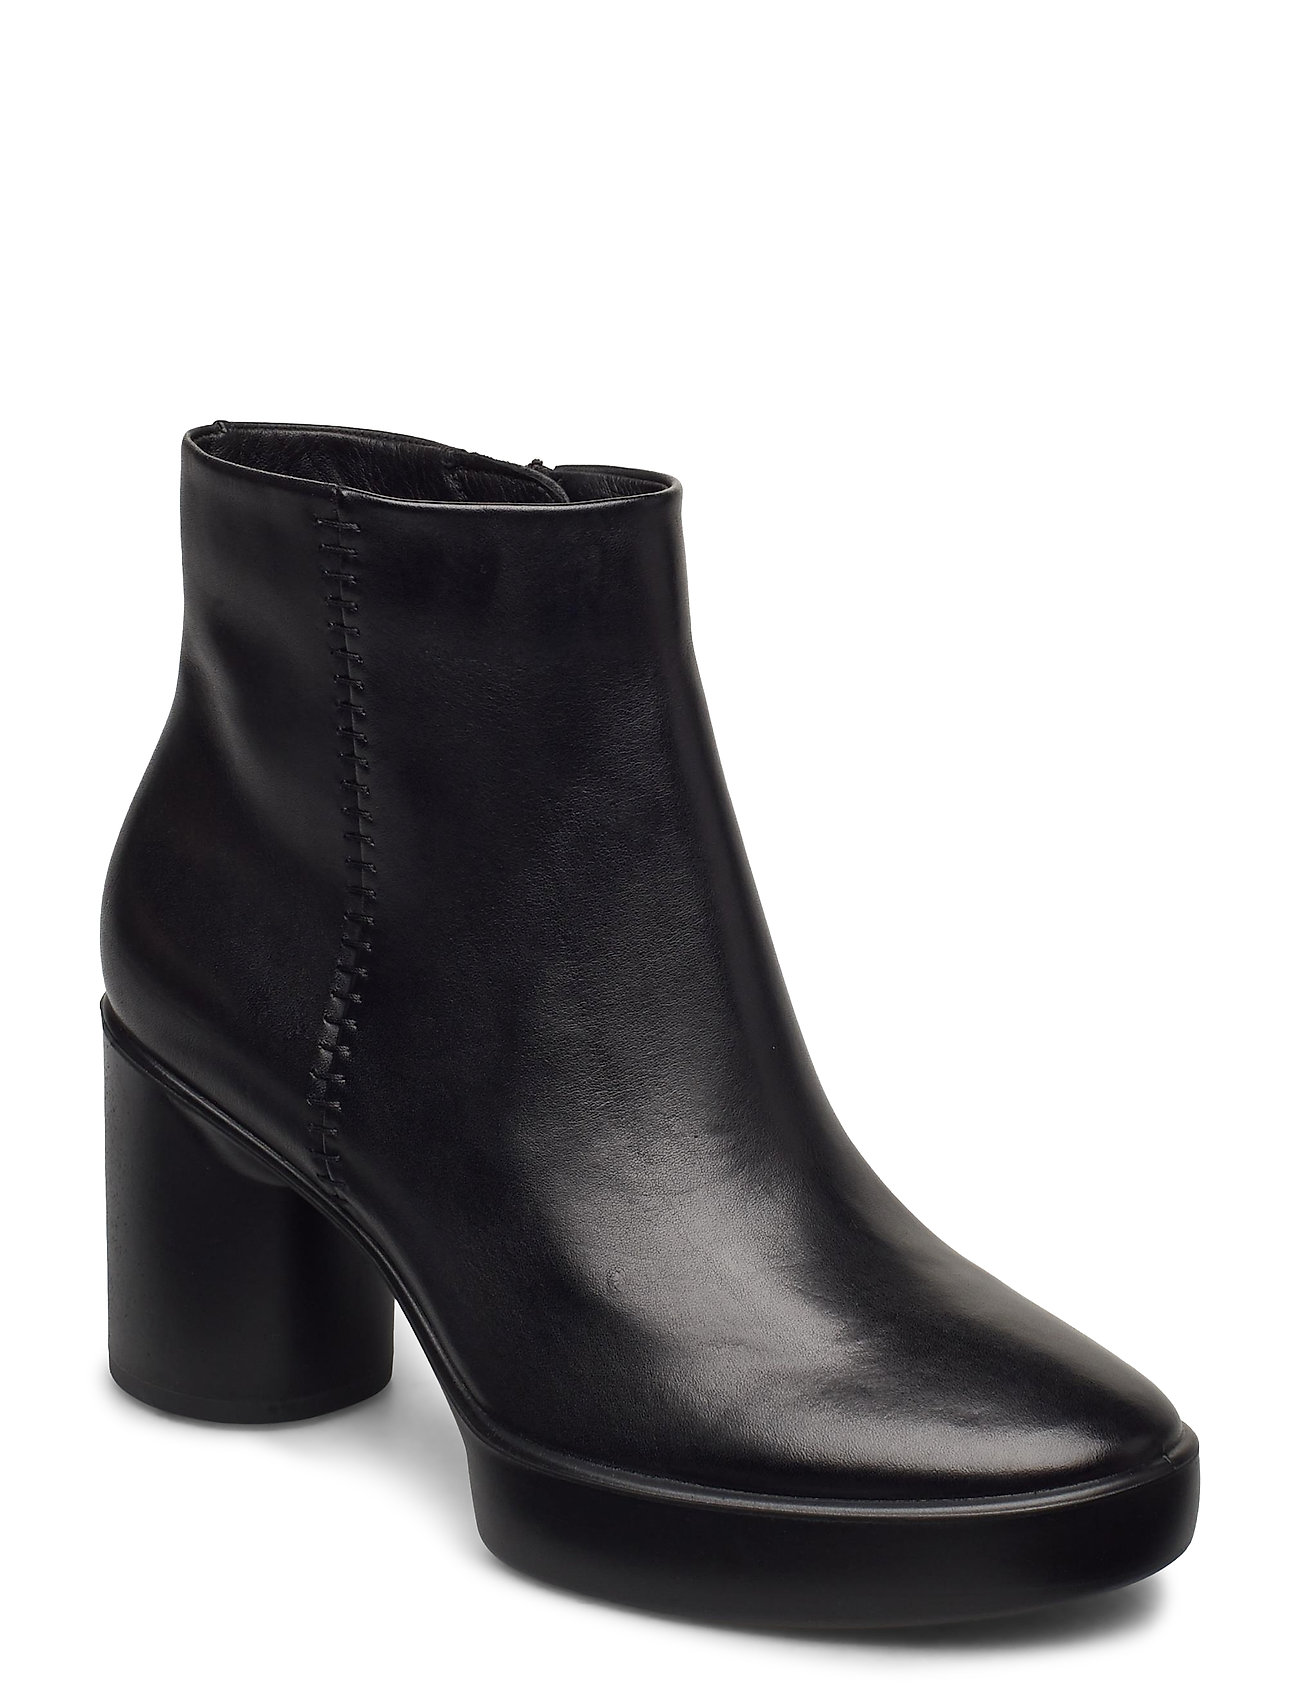 Image of Shape Sculpted Motion 55 Shoes Boots Ankle Boots Ankle Boot - Heel Sort ECCO (3438741219)